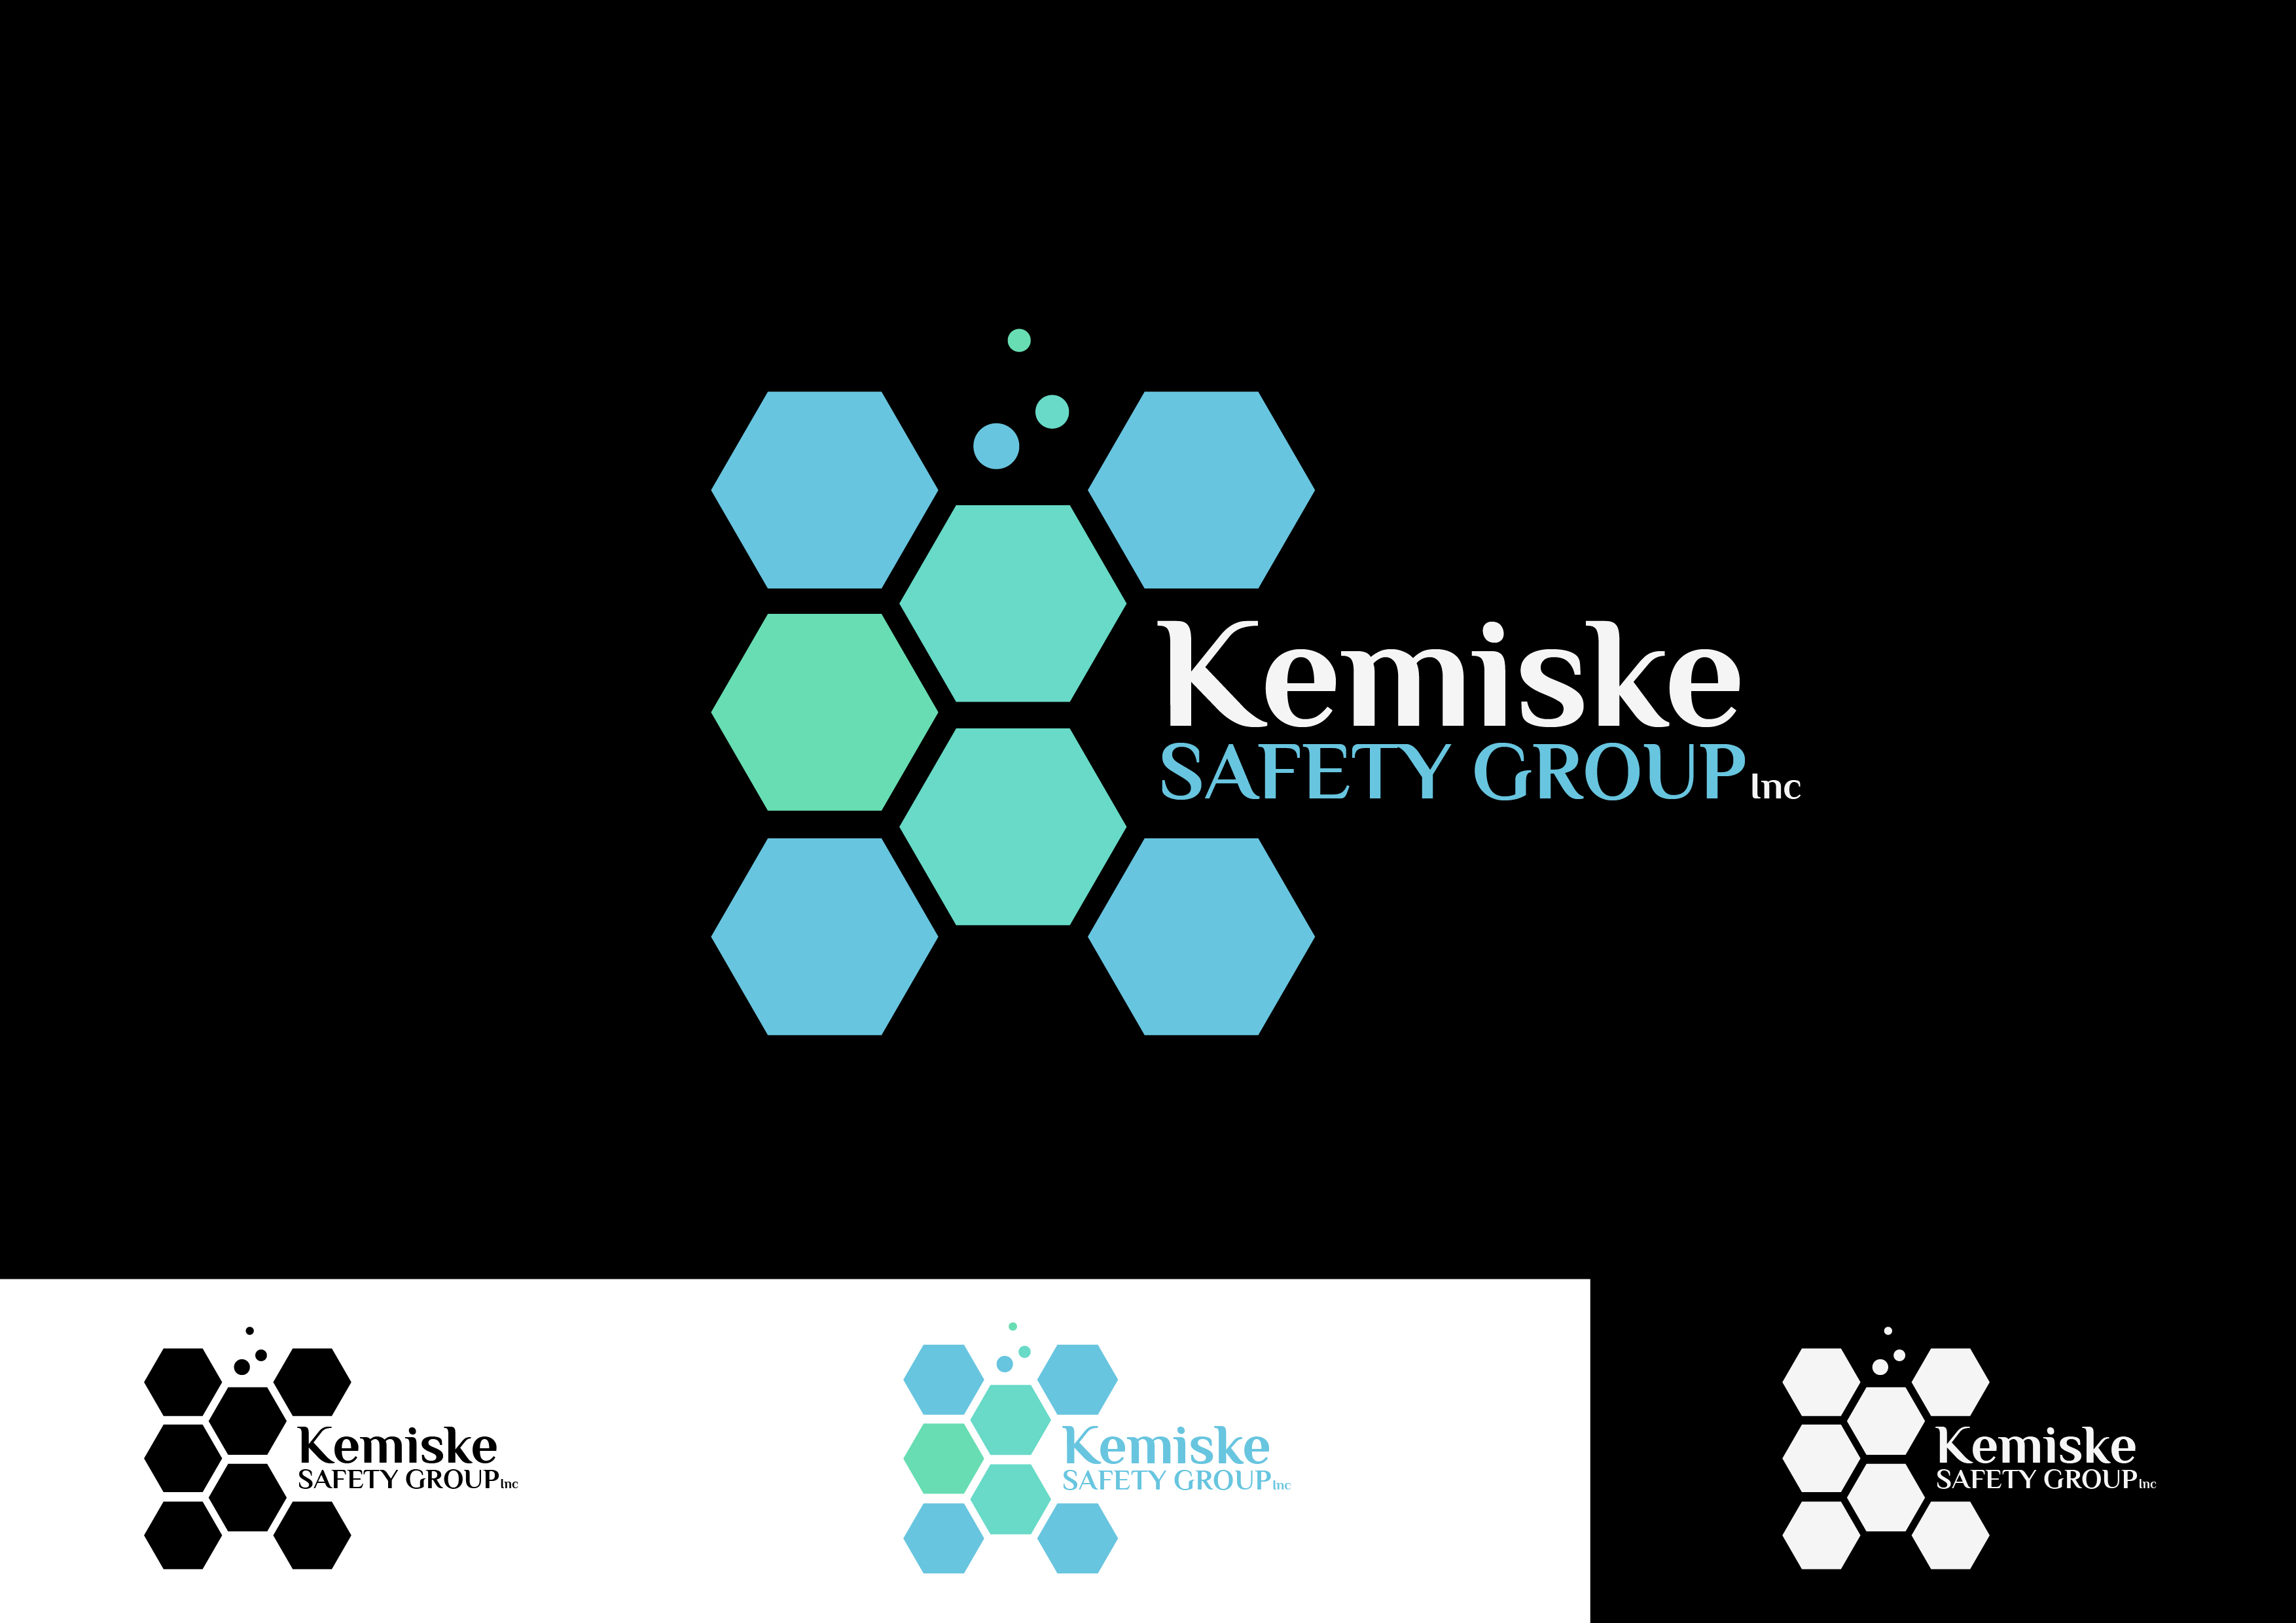 Logo Design by 3draw - Entry No. 81 in the Logo Design Contest New Logo Design for Kemiske Safety Group Inc..